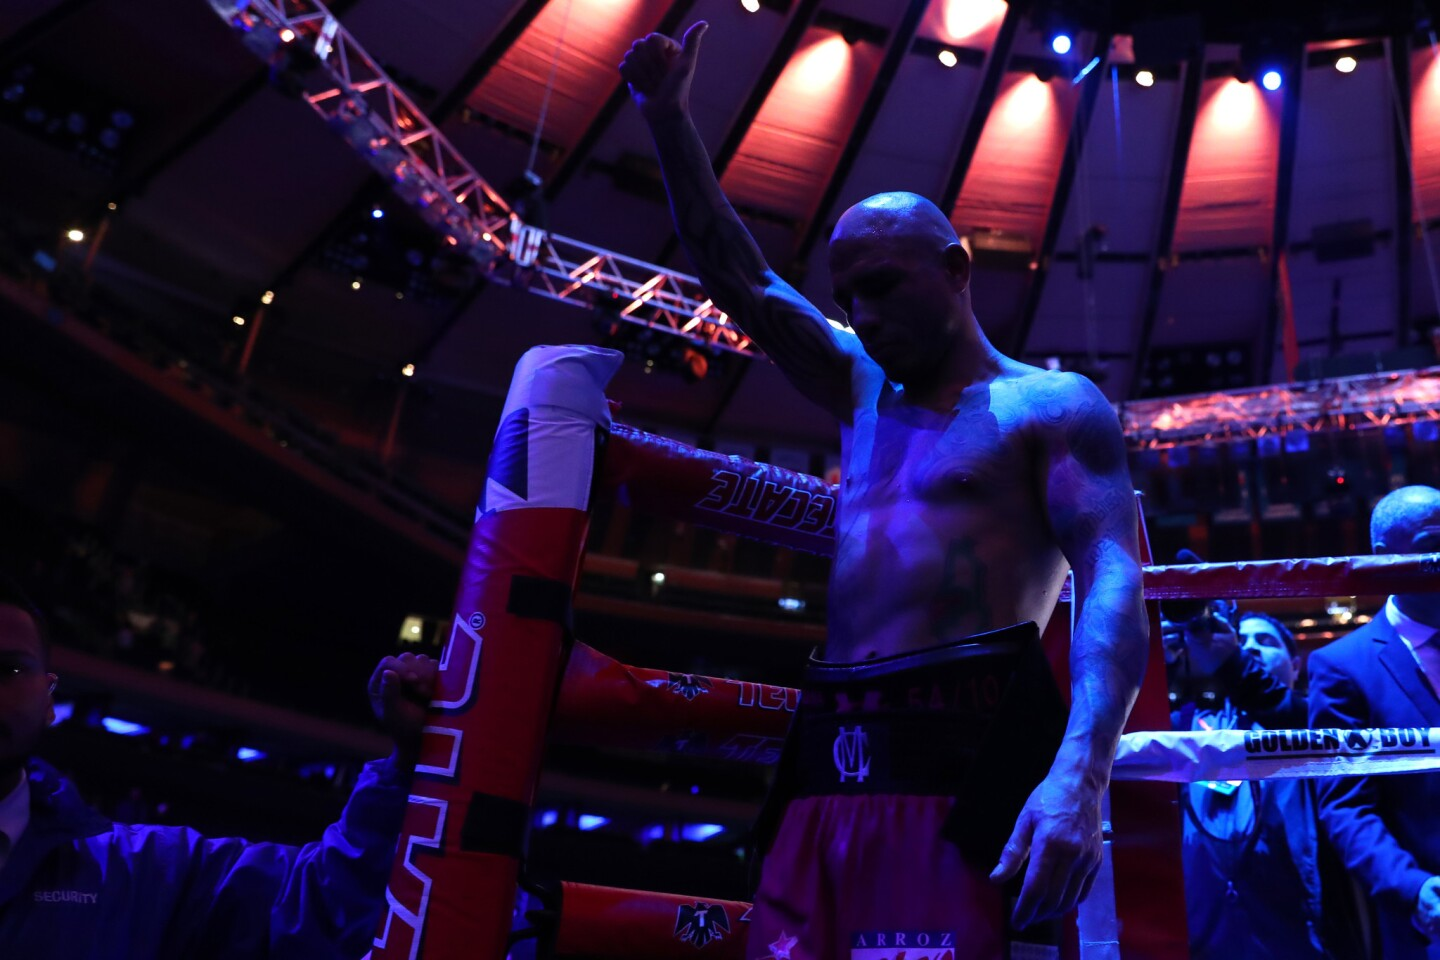 NEW YORK, NEW YORK - DECEMBER 02: Miguel Cotto waves to the crowd after losing to Sadaam Ali in their Junior Middleweight bout at Madison Square Garden on December 02, 2017 in New York City. (Photo by Al Bello/Getty Images) ** OUTS - ELSENT, FPG, CM - OUTS * NM, PH, VA if sourced by CT, LA or MoD **